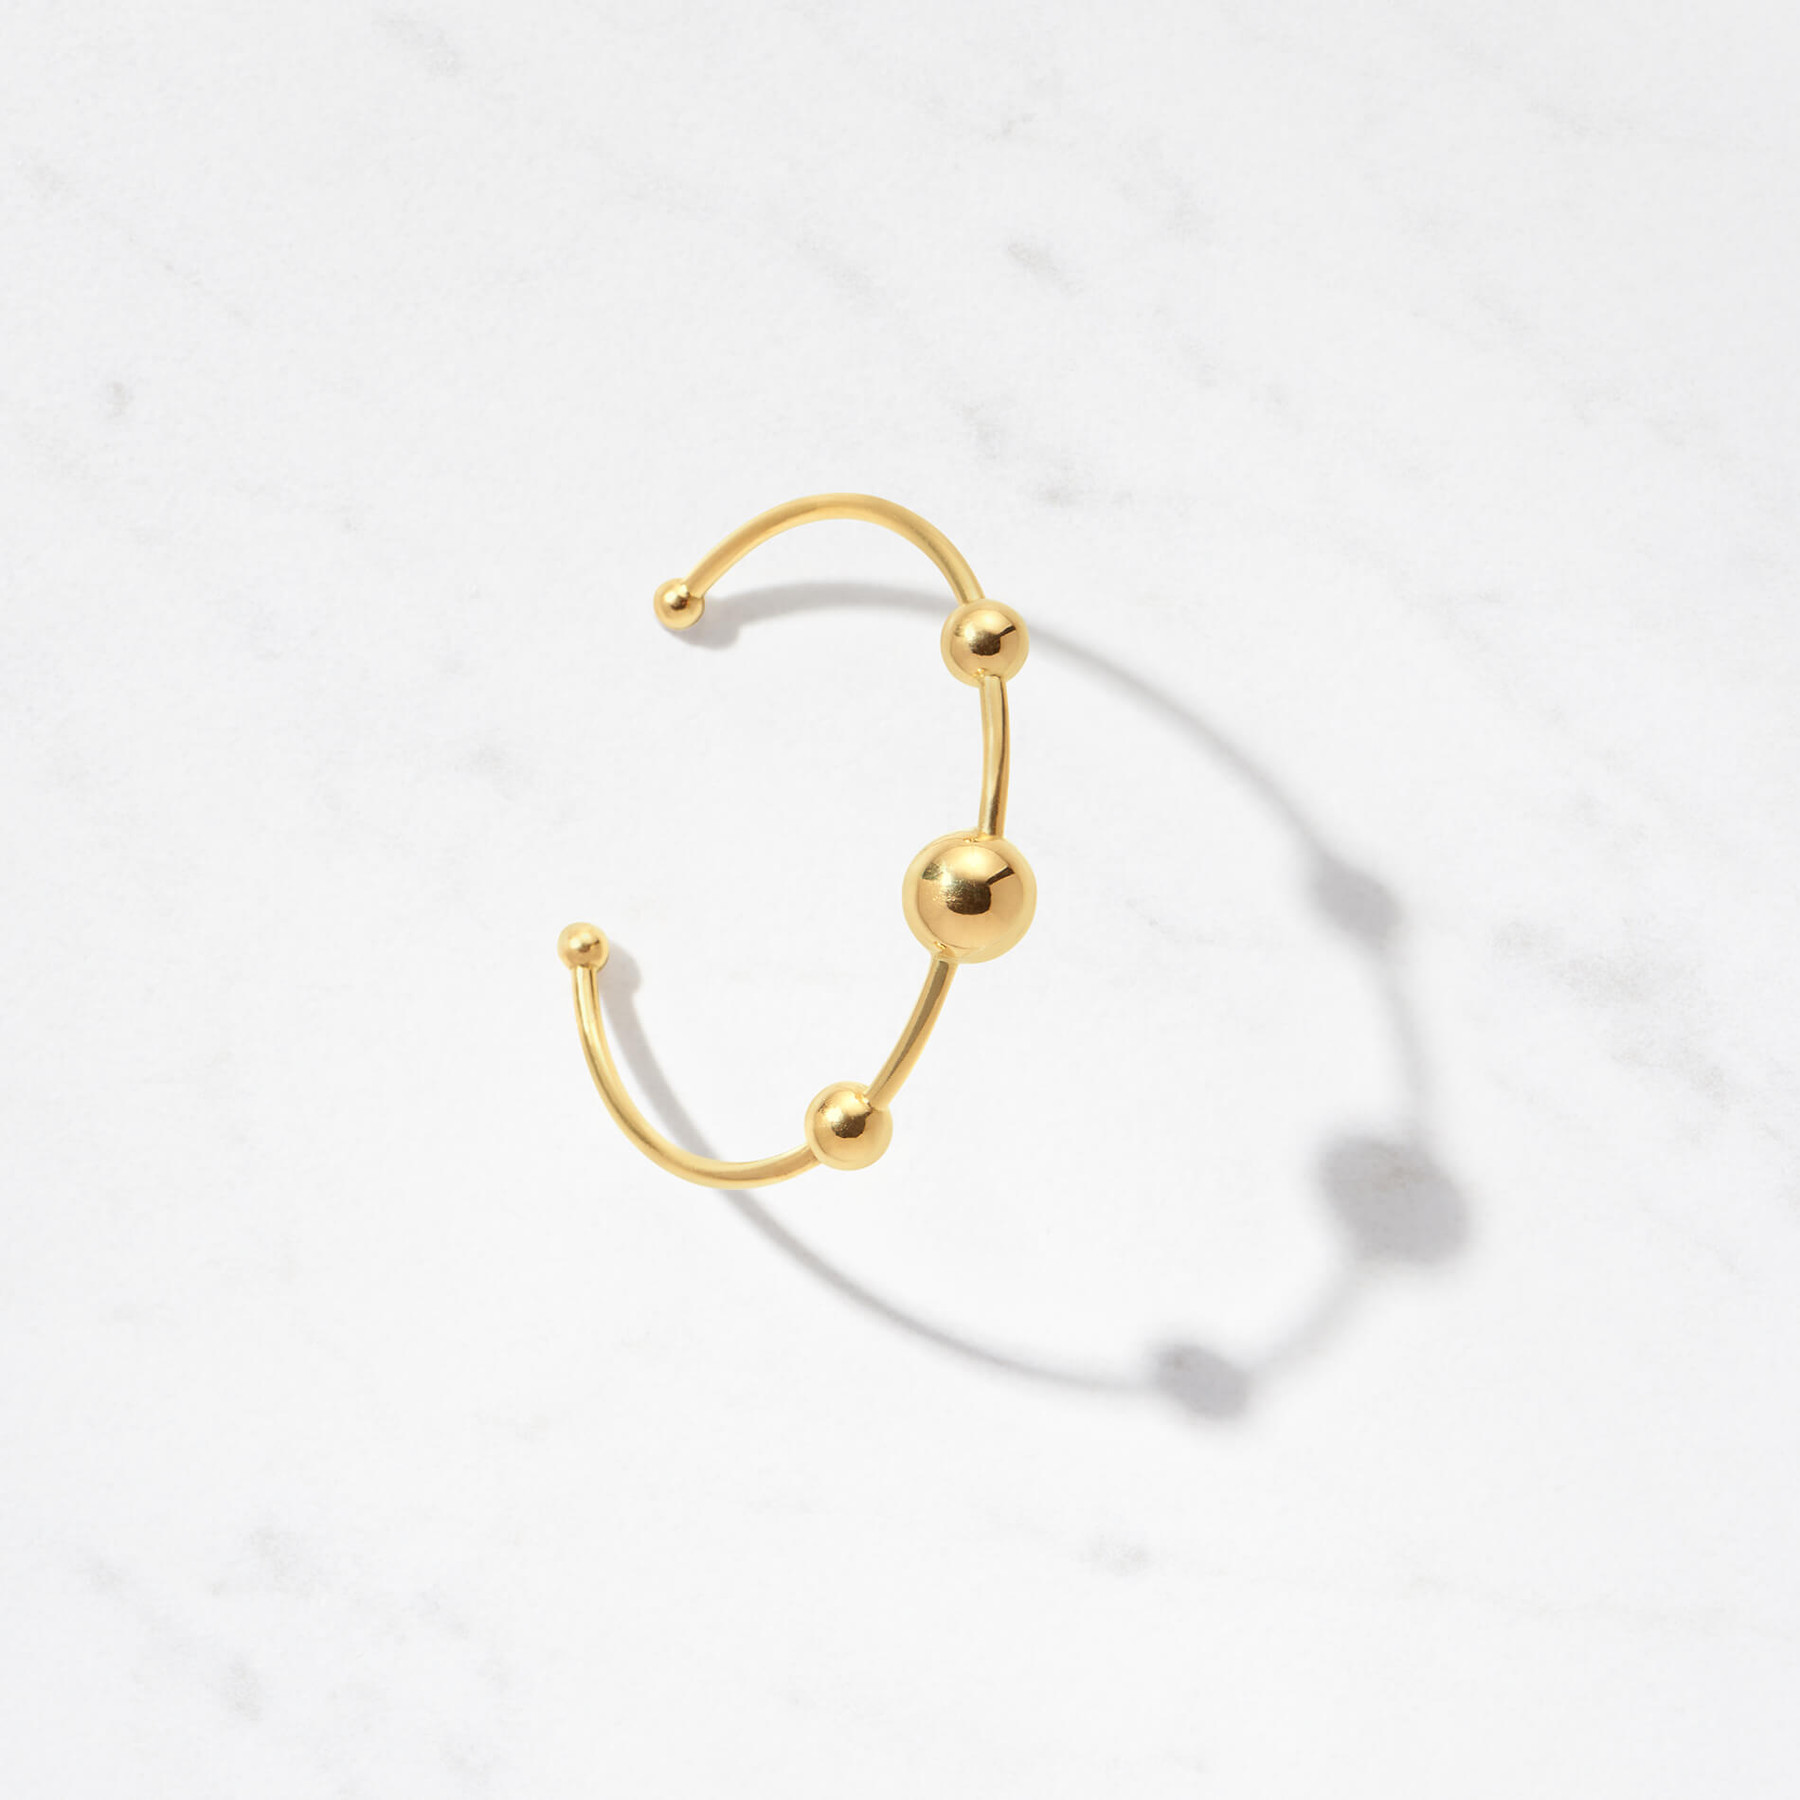 Multiple golden moons orbit your wrist. Our Astra I Cuff, with a gold weight of approximately 15 grams, shines in 22 karat polished gold.